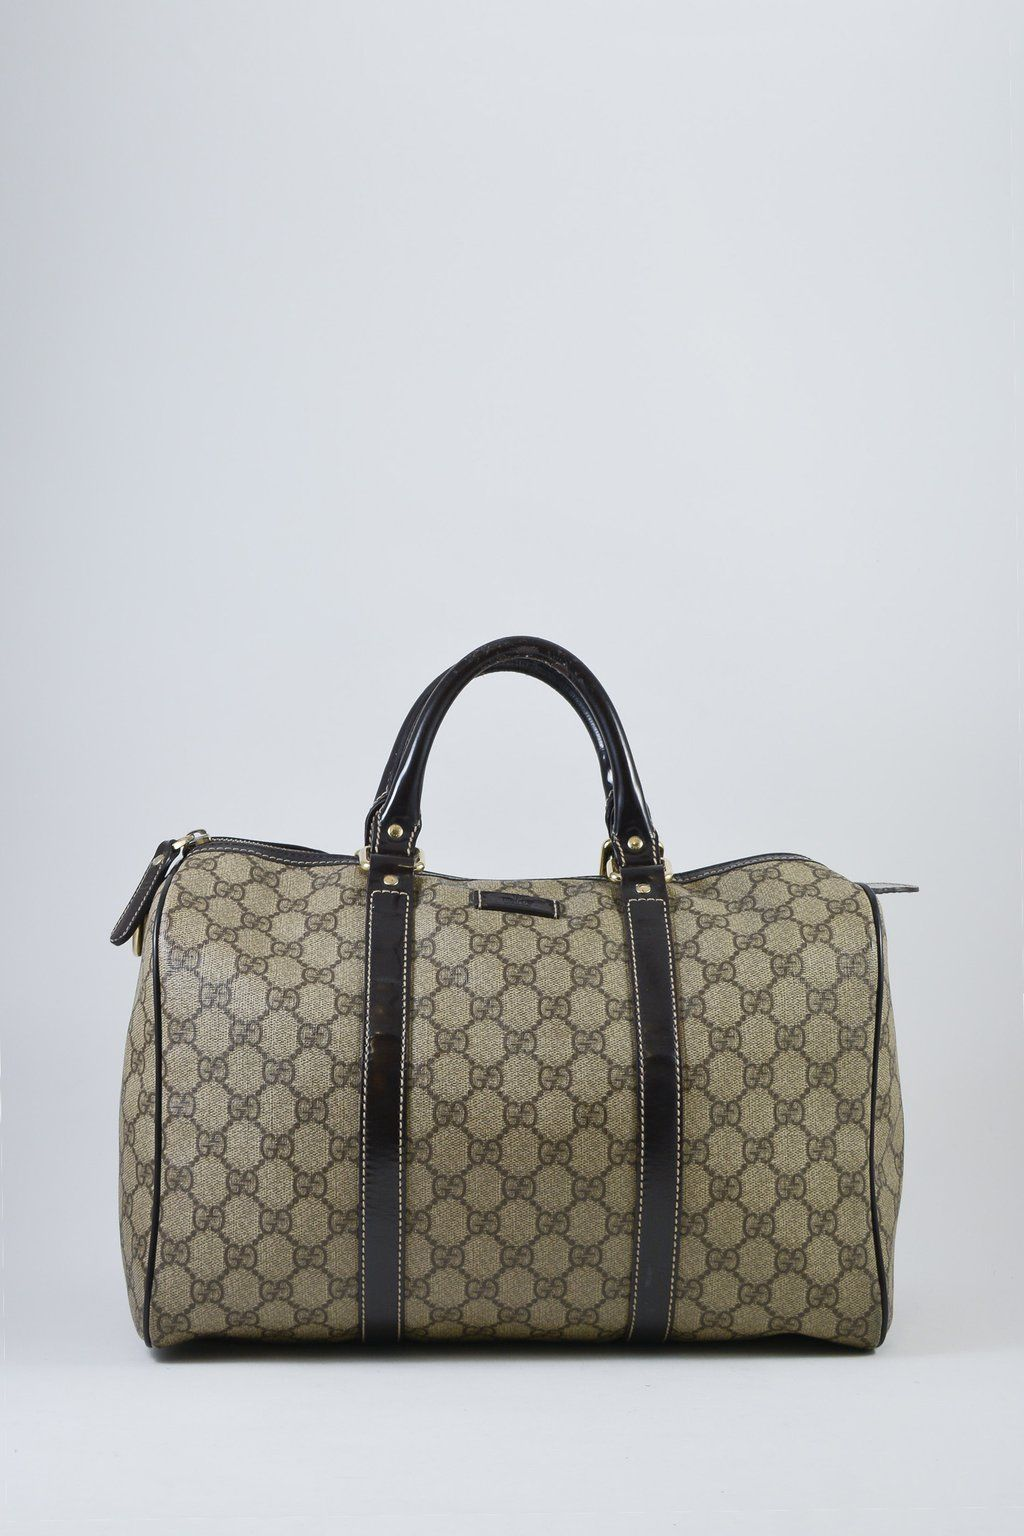 54aff377b Gucci GG Brown Coated Canvas Joy Boston Bag. Twin rolled leather handles  with a fully